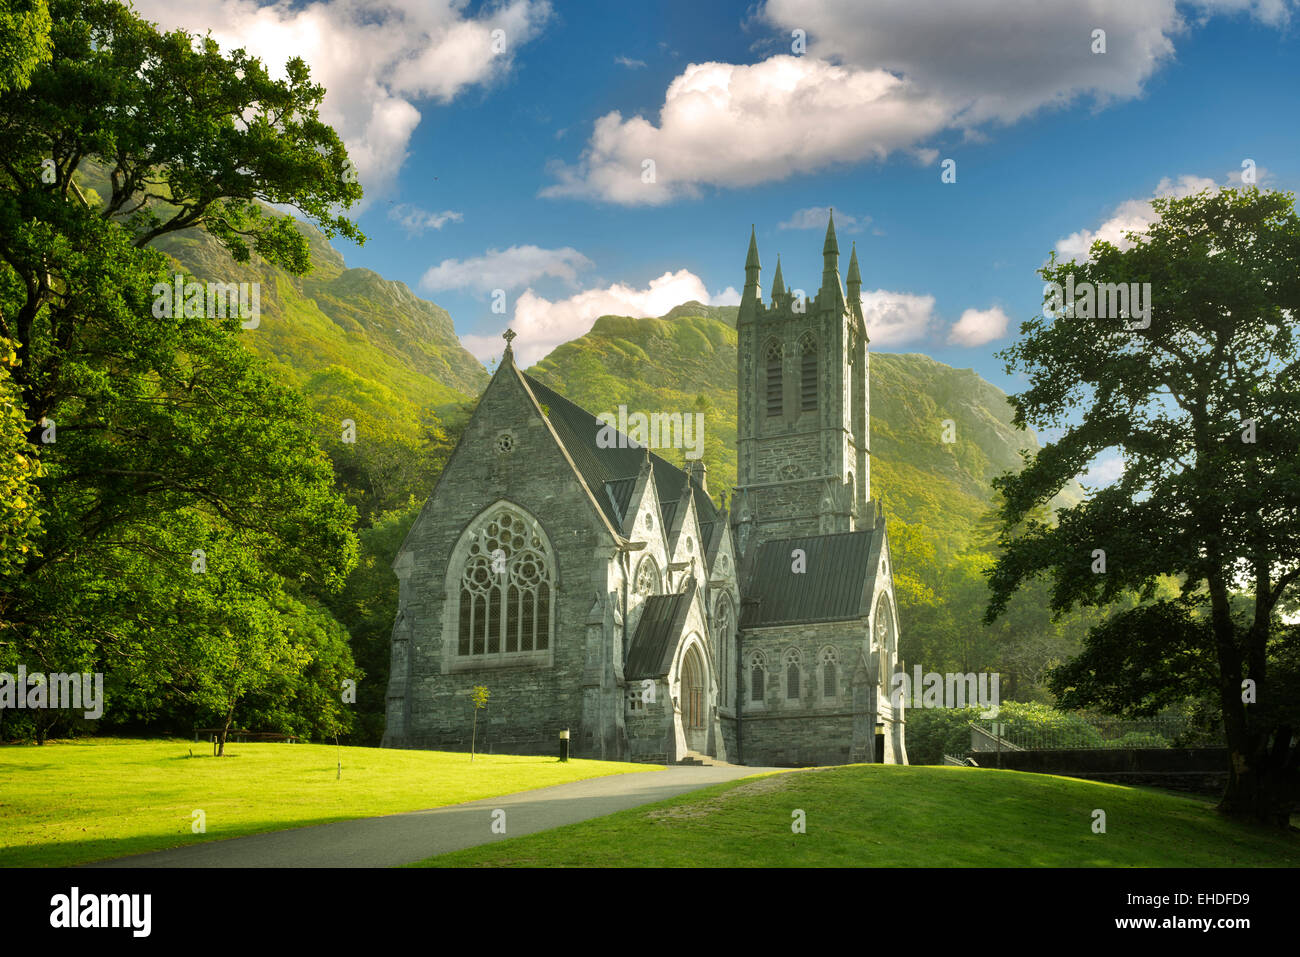 Gotische Kirche, Mary Henry Memorial in Kylemore Abbey. Connemara Region, Irland Stockbild